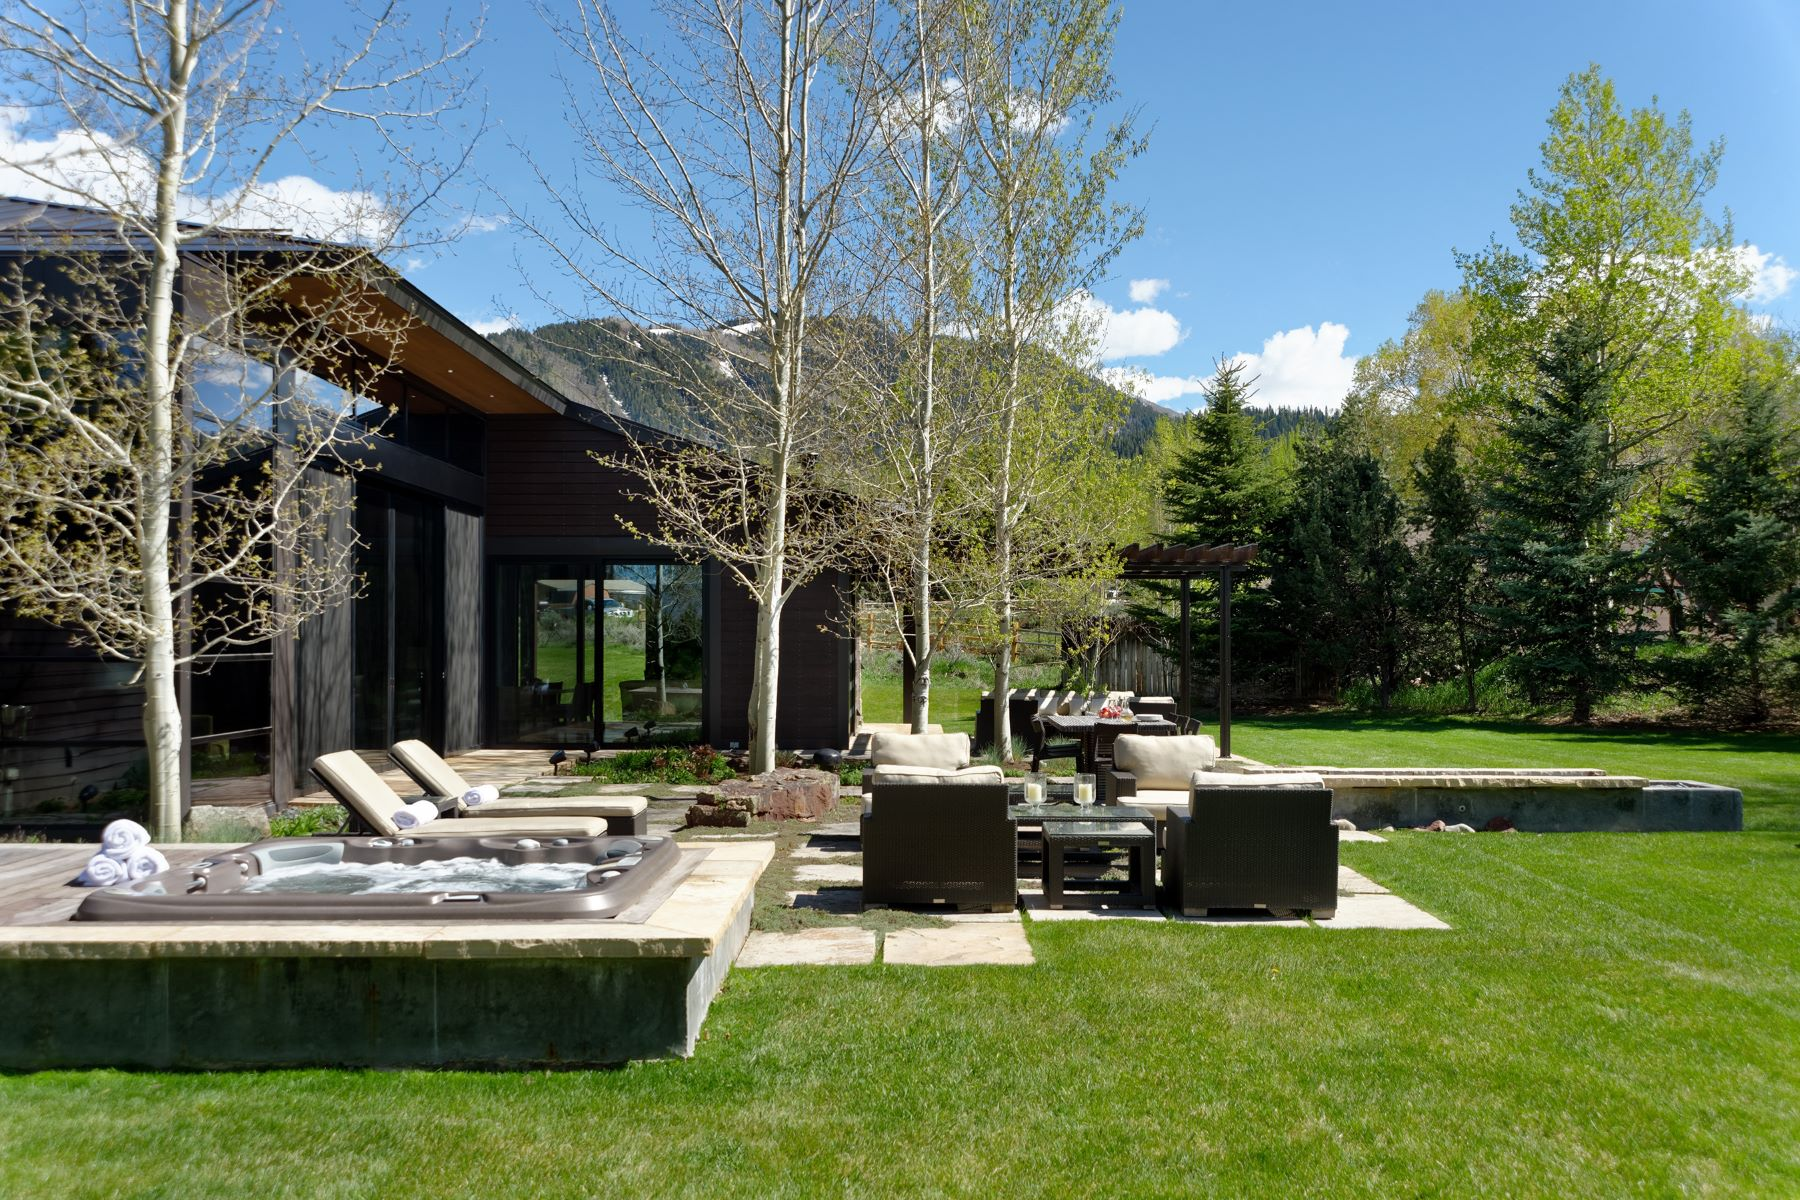 Single Family Home for Sale at Impressive Mountain Contemporary in West Aspen 28 Maroon Drive Aspen, Colorado, 81611 United States